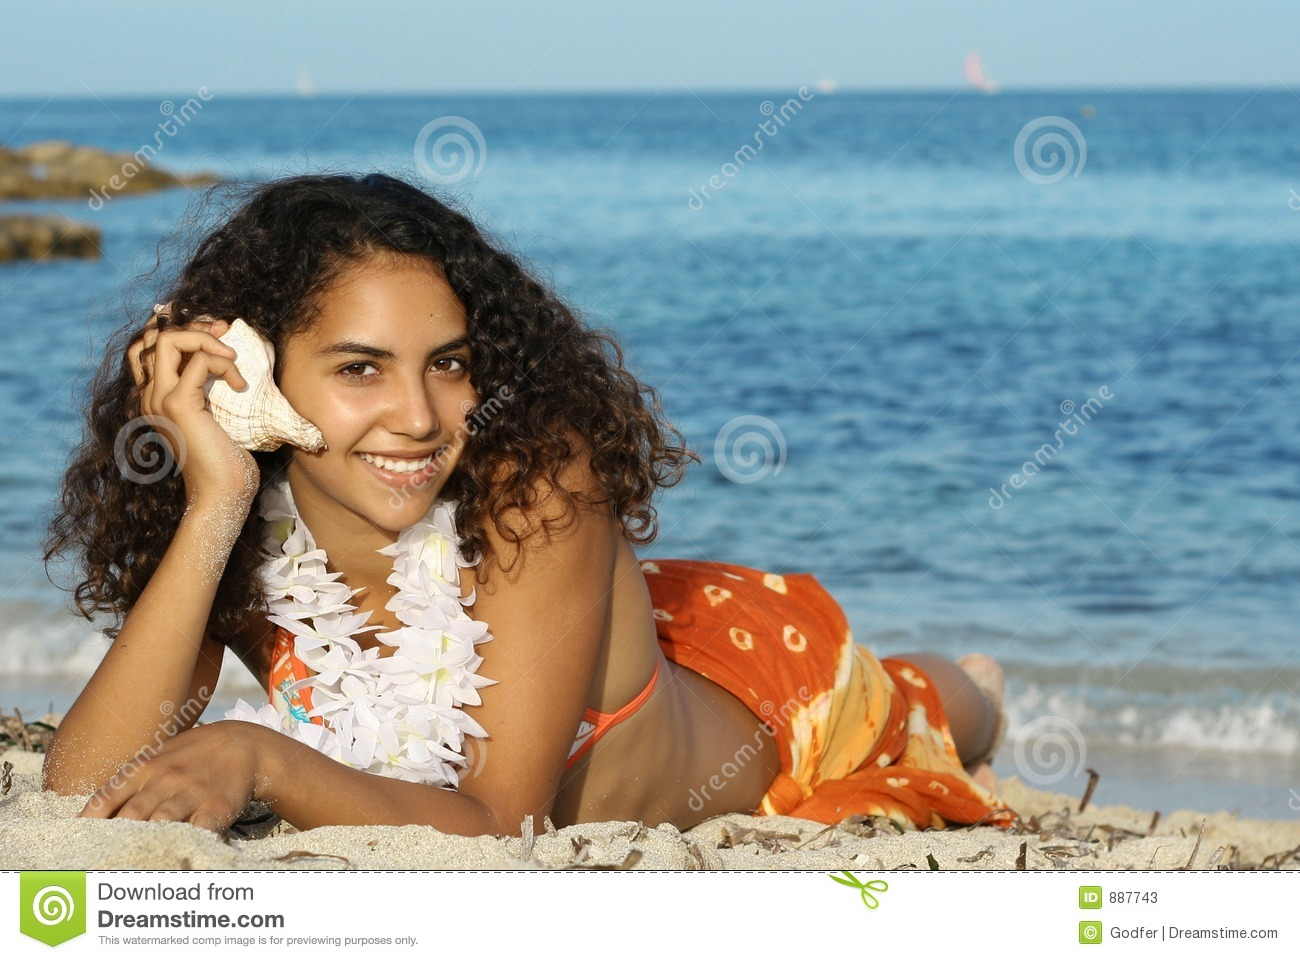 Happy Hawaiian Girl Stock Image Image Of Girl, Cute -4868